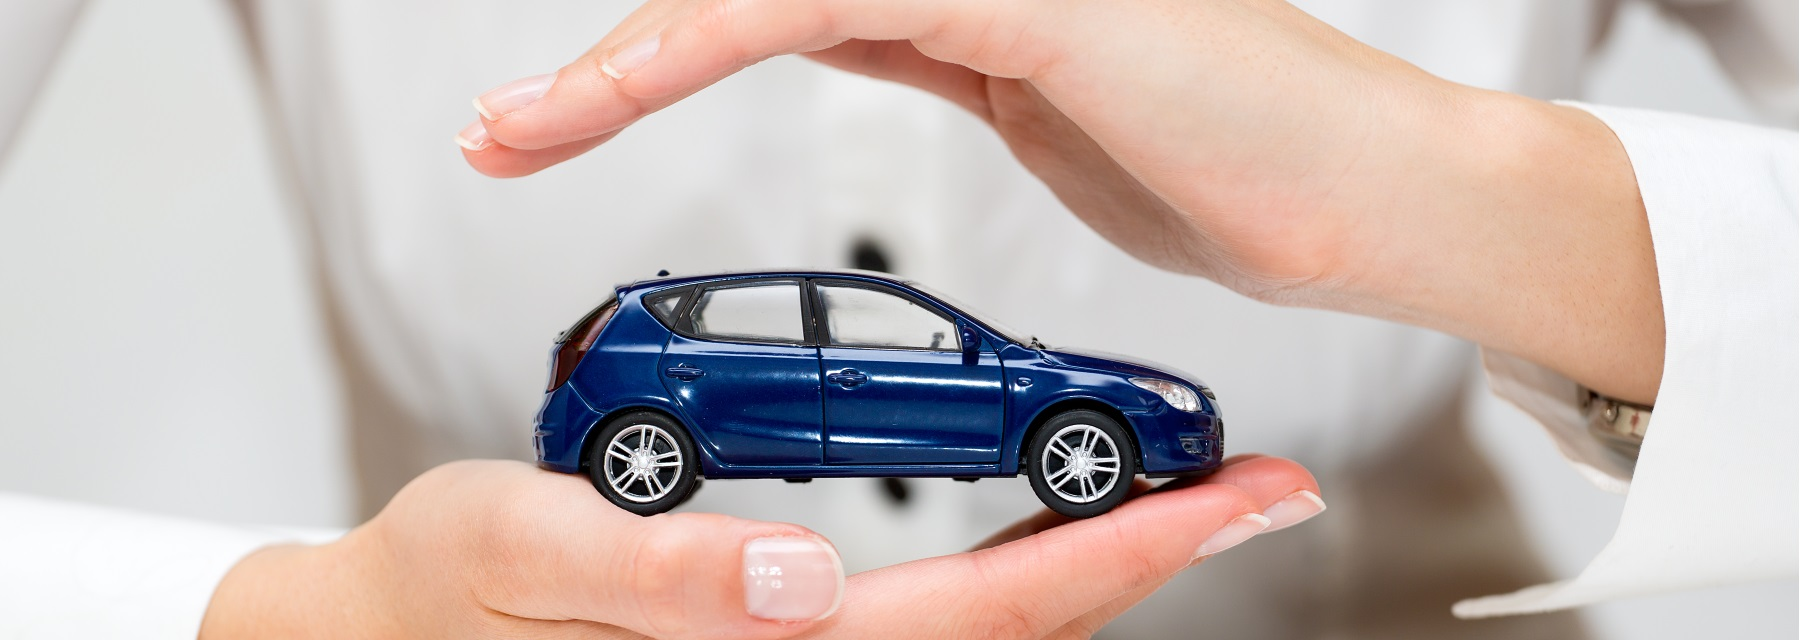 two hands holding miniture blue car